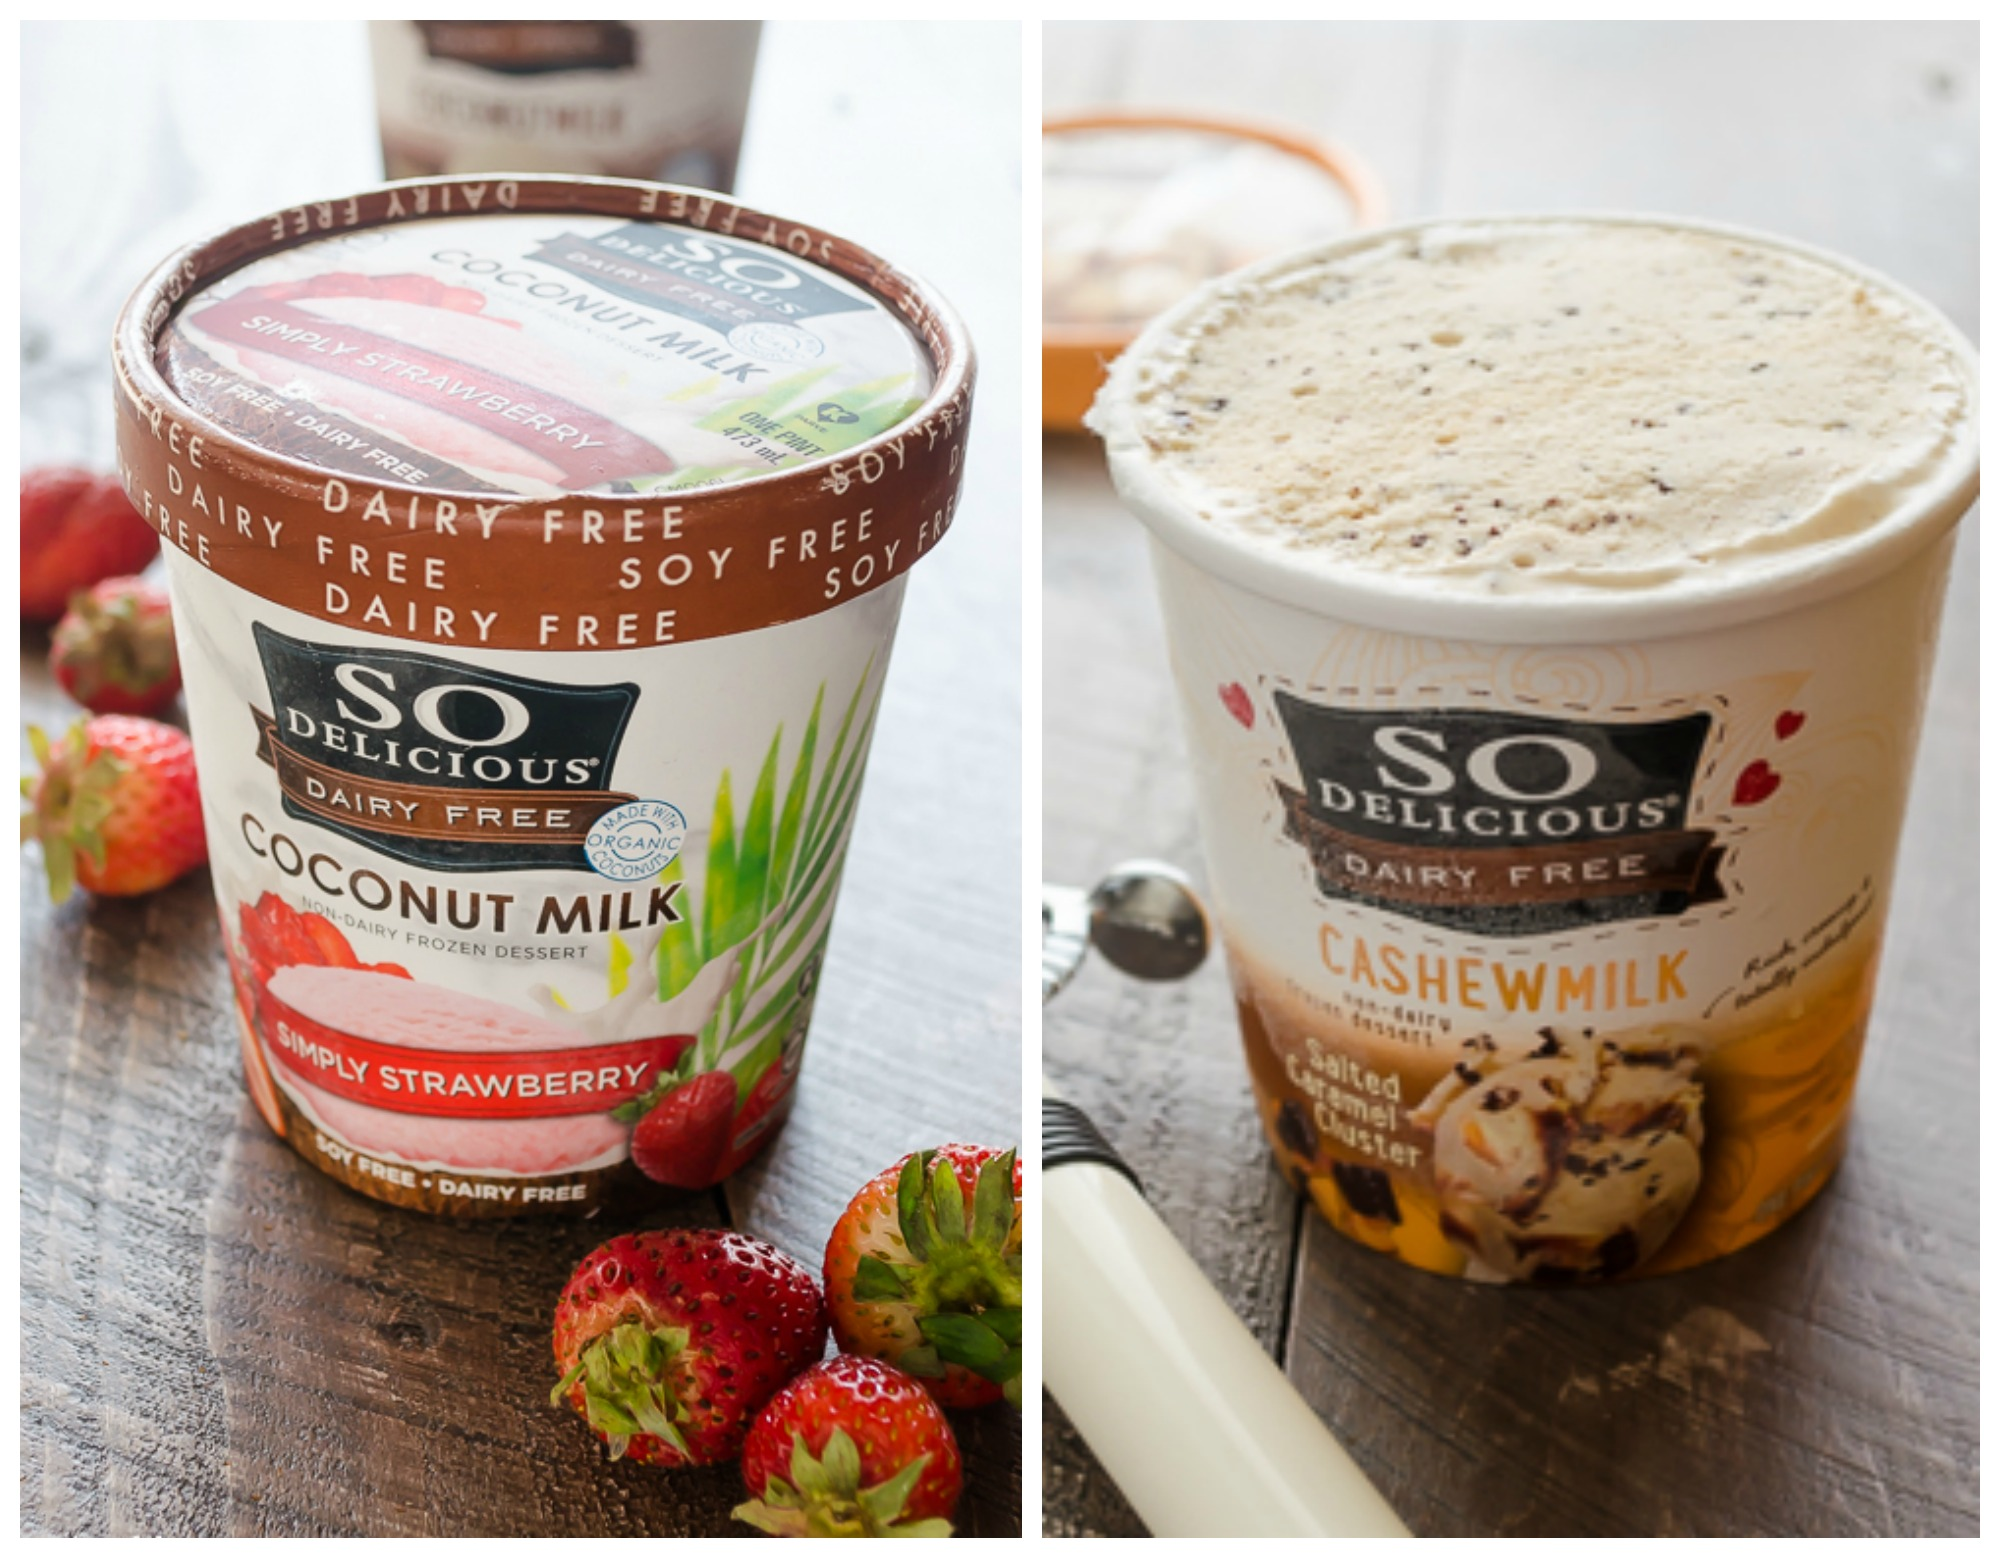 Don't forget, you can find great dairy-free selections in the frozen section, too, from coconut- and rice-milk ice creams to cheese-free pizzas. As always, product ingredients can change without notice, so be sure to check the label every time you purchase a product.